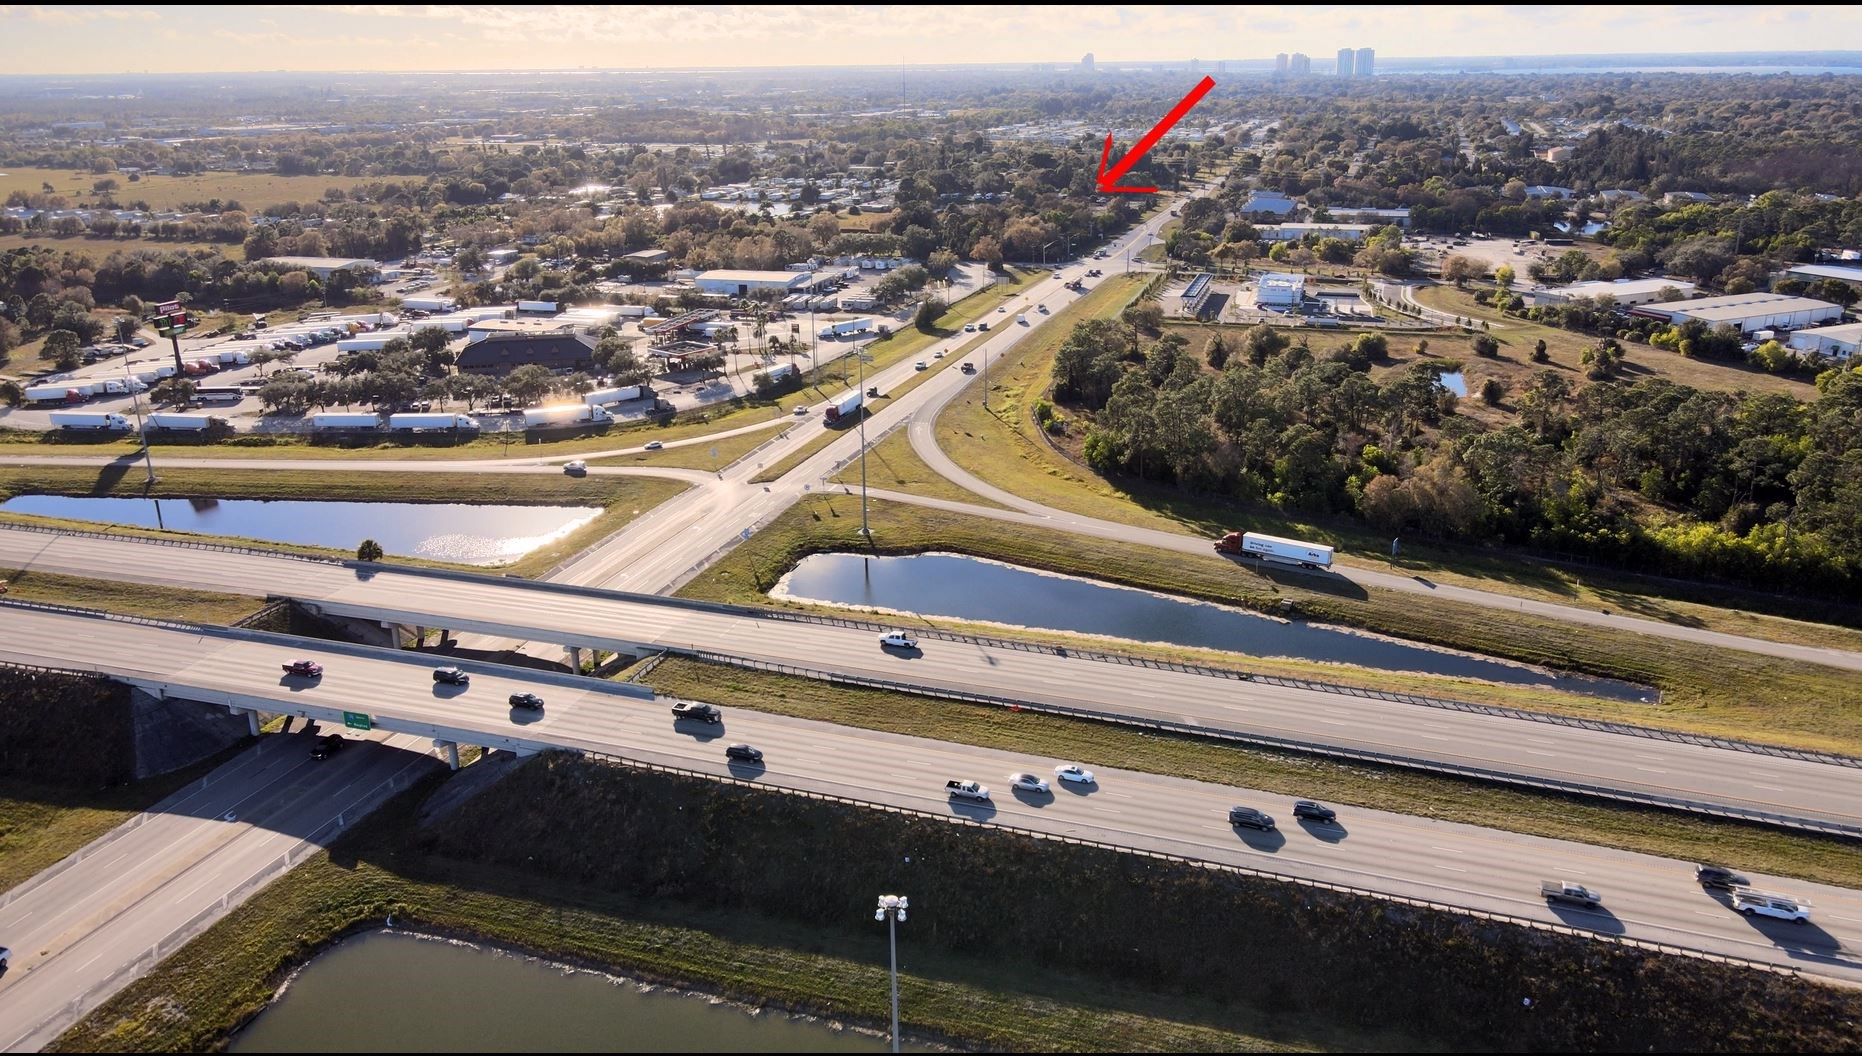 Commercial Development Land For Sale in Lee County, FL